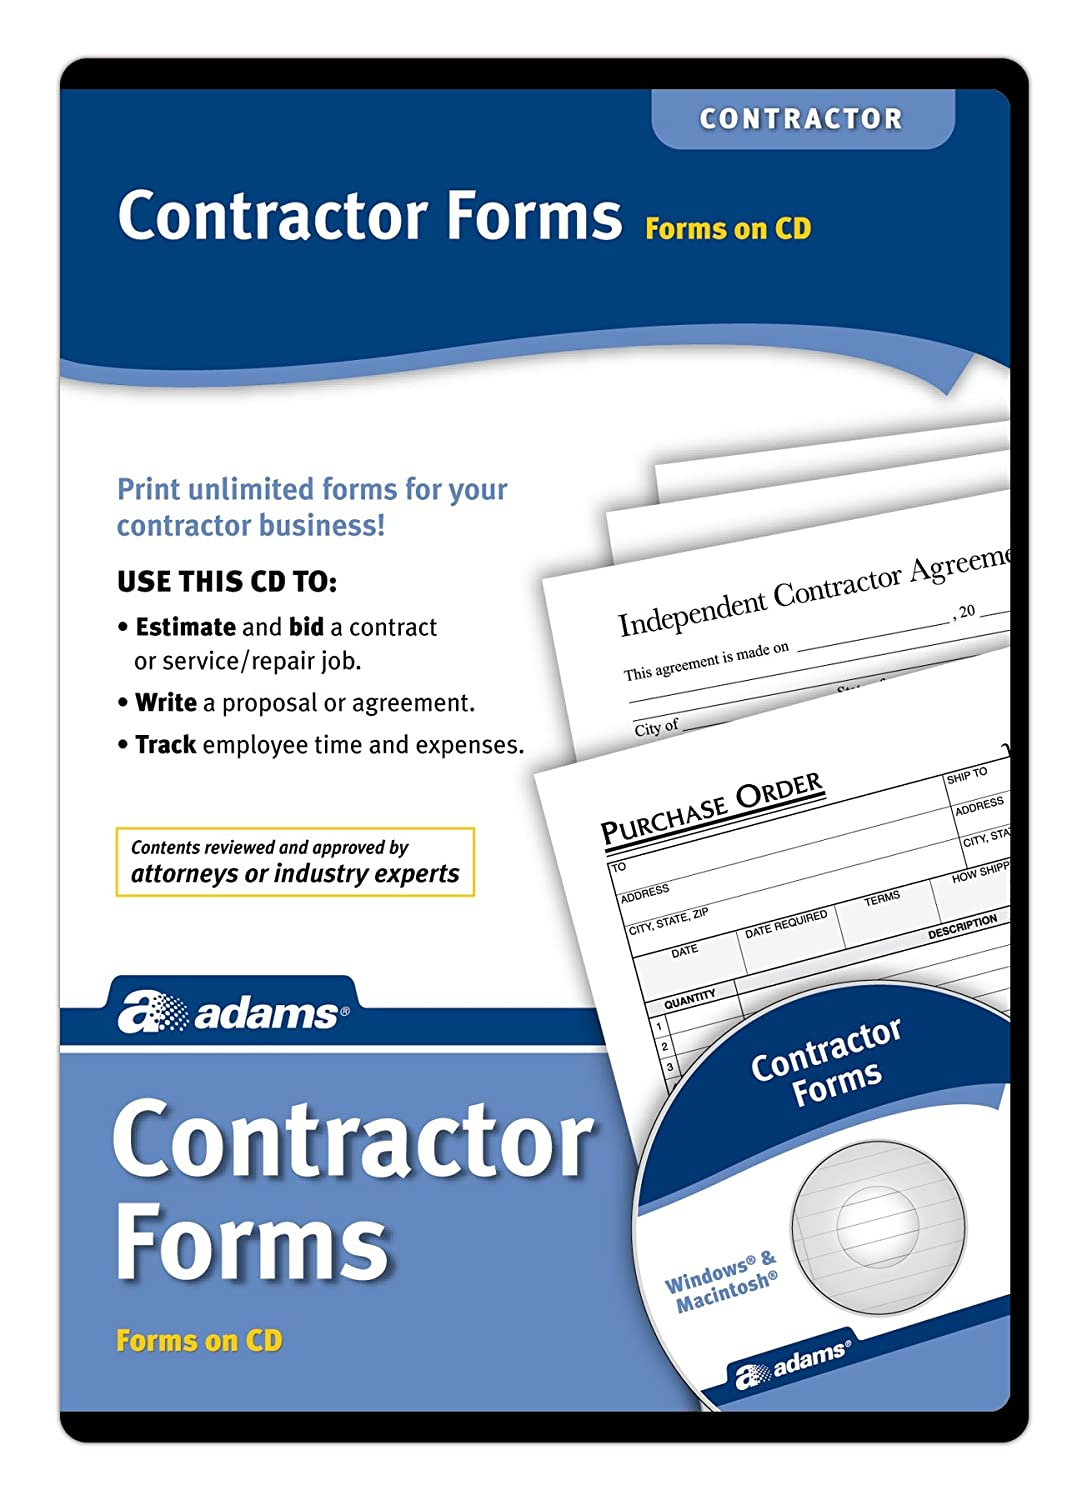 amazon com adams contractor s forms on cd ss4301 legal forms amazon com adams contractor s forms on cd ss4301 legal forms office products